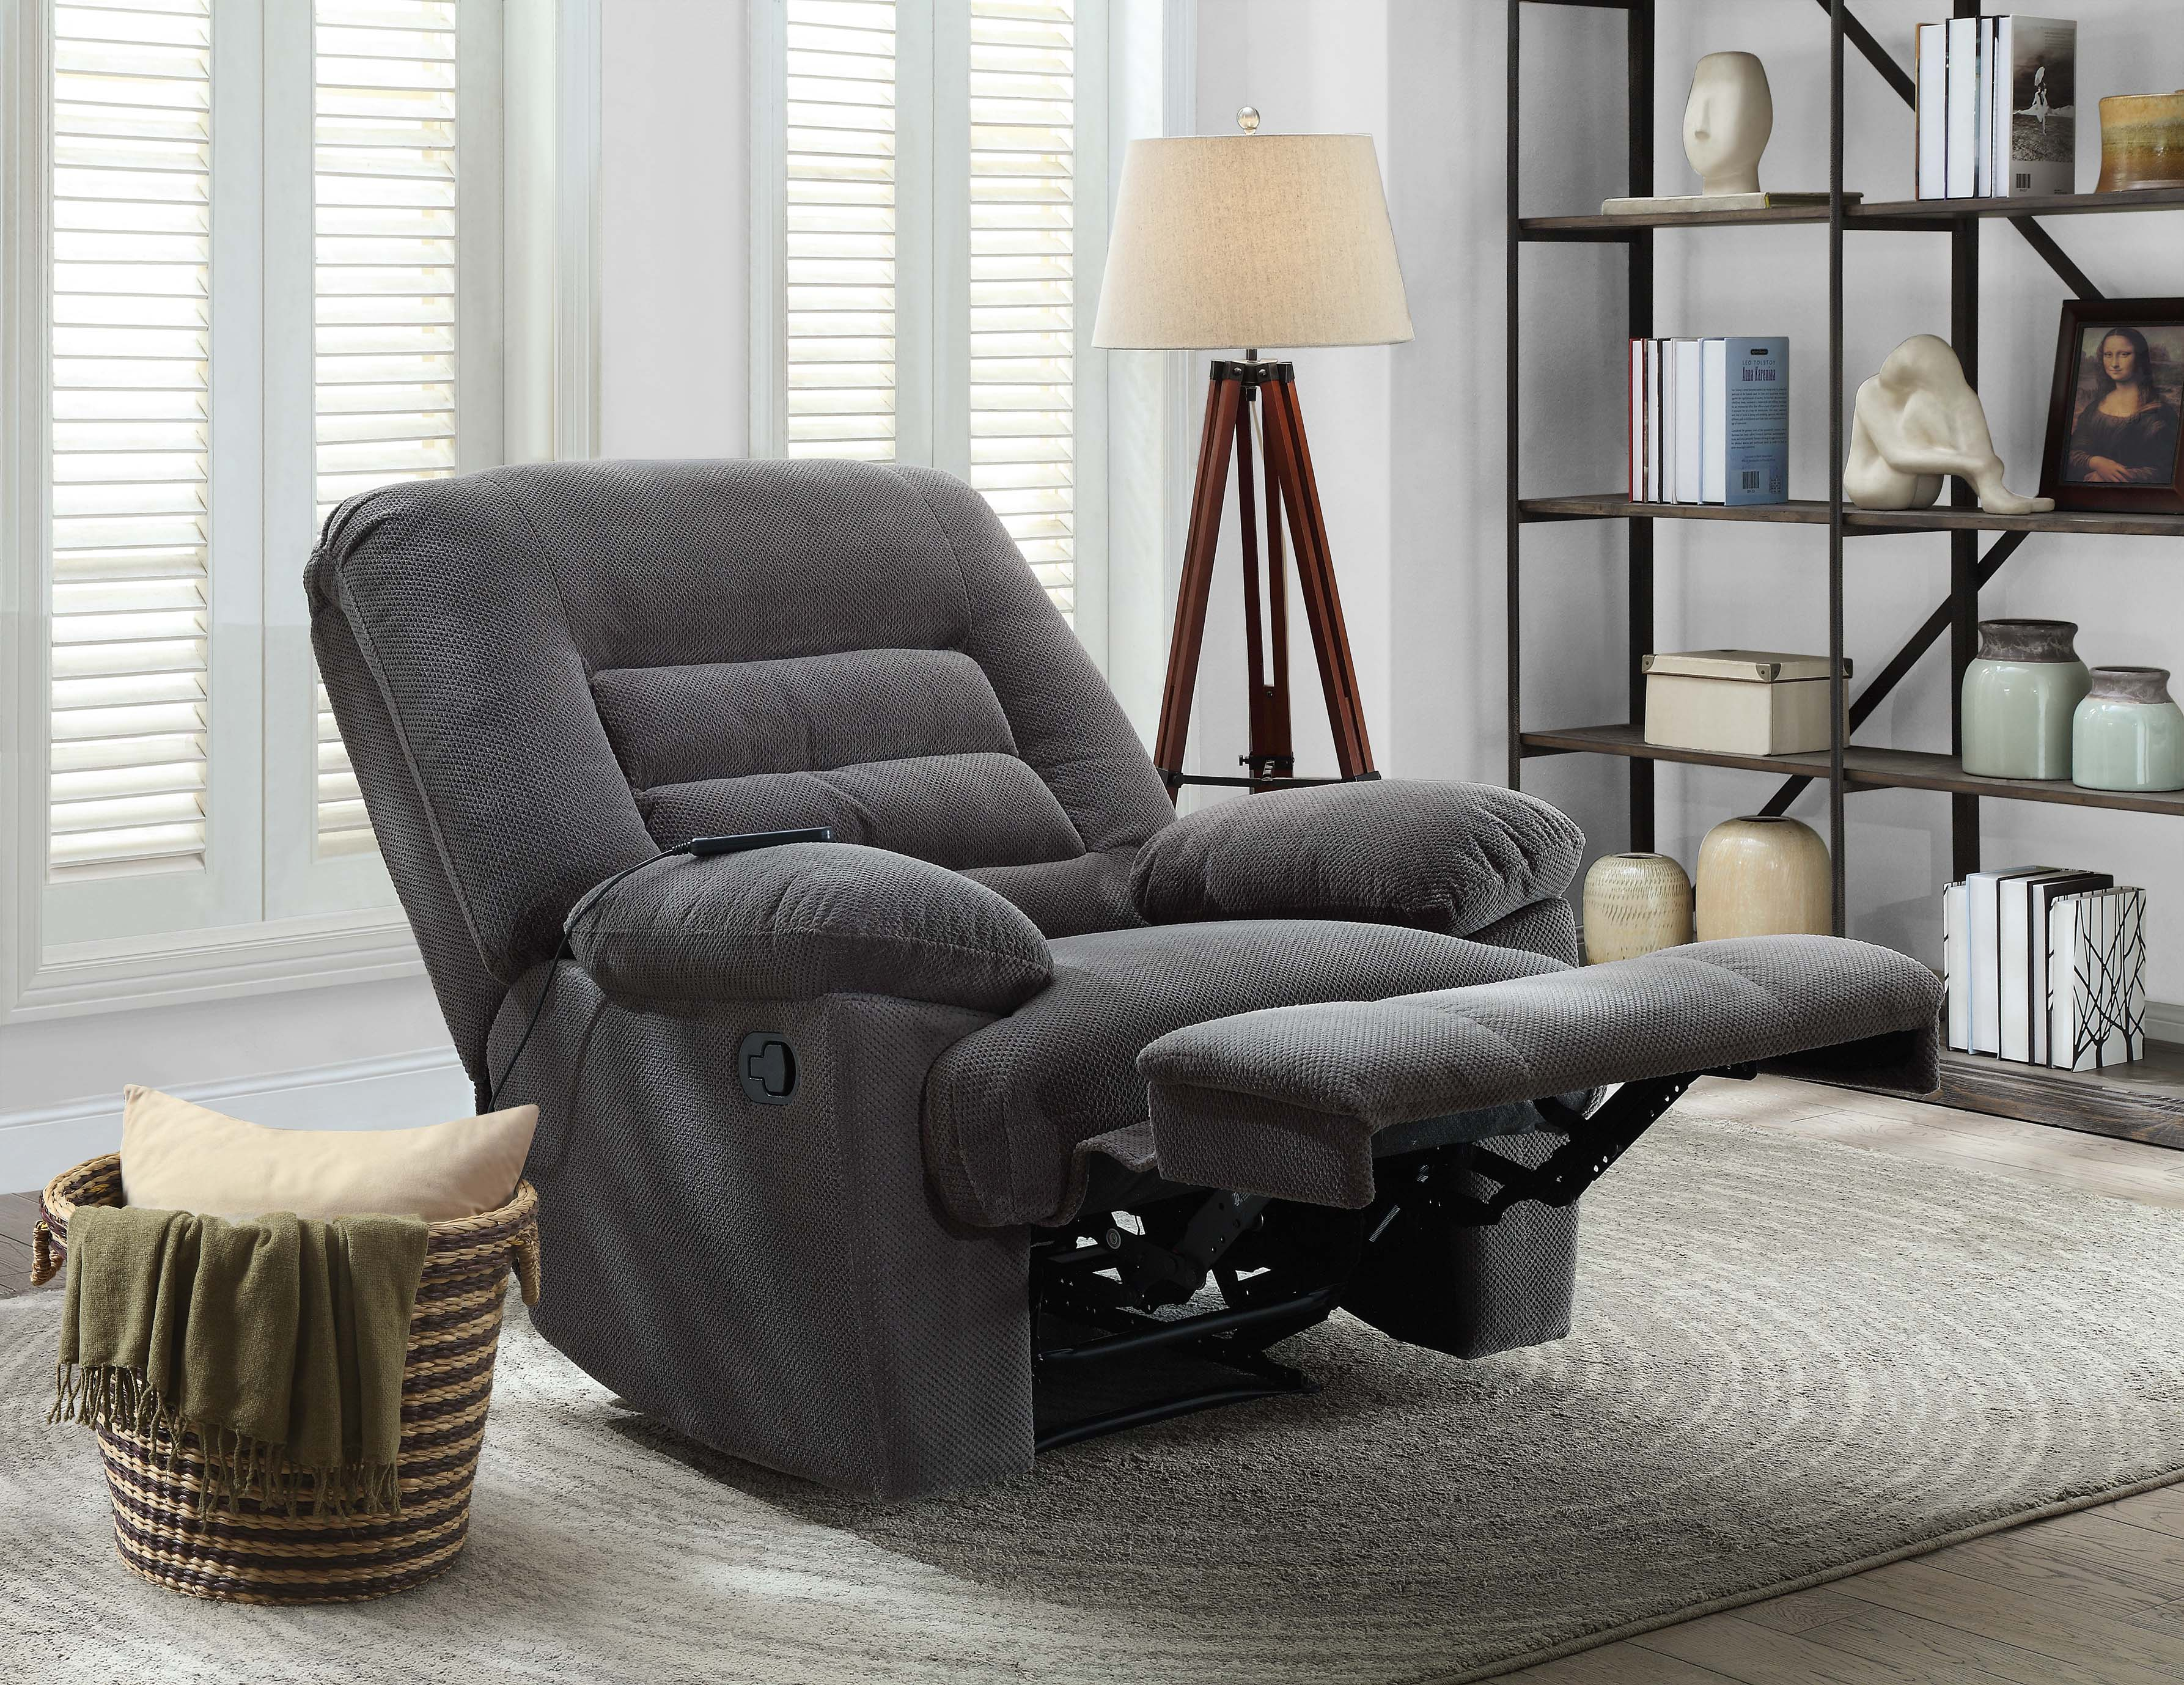 picture 18 of 26 - Serta Recliners